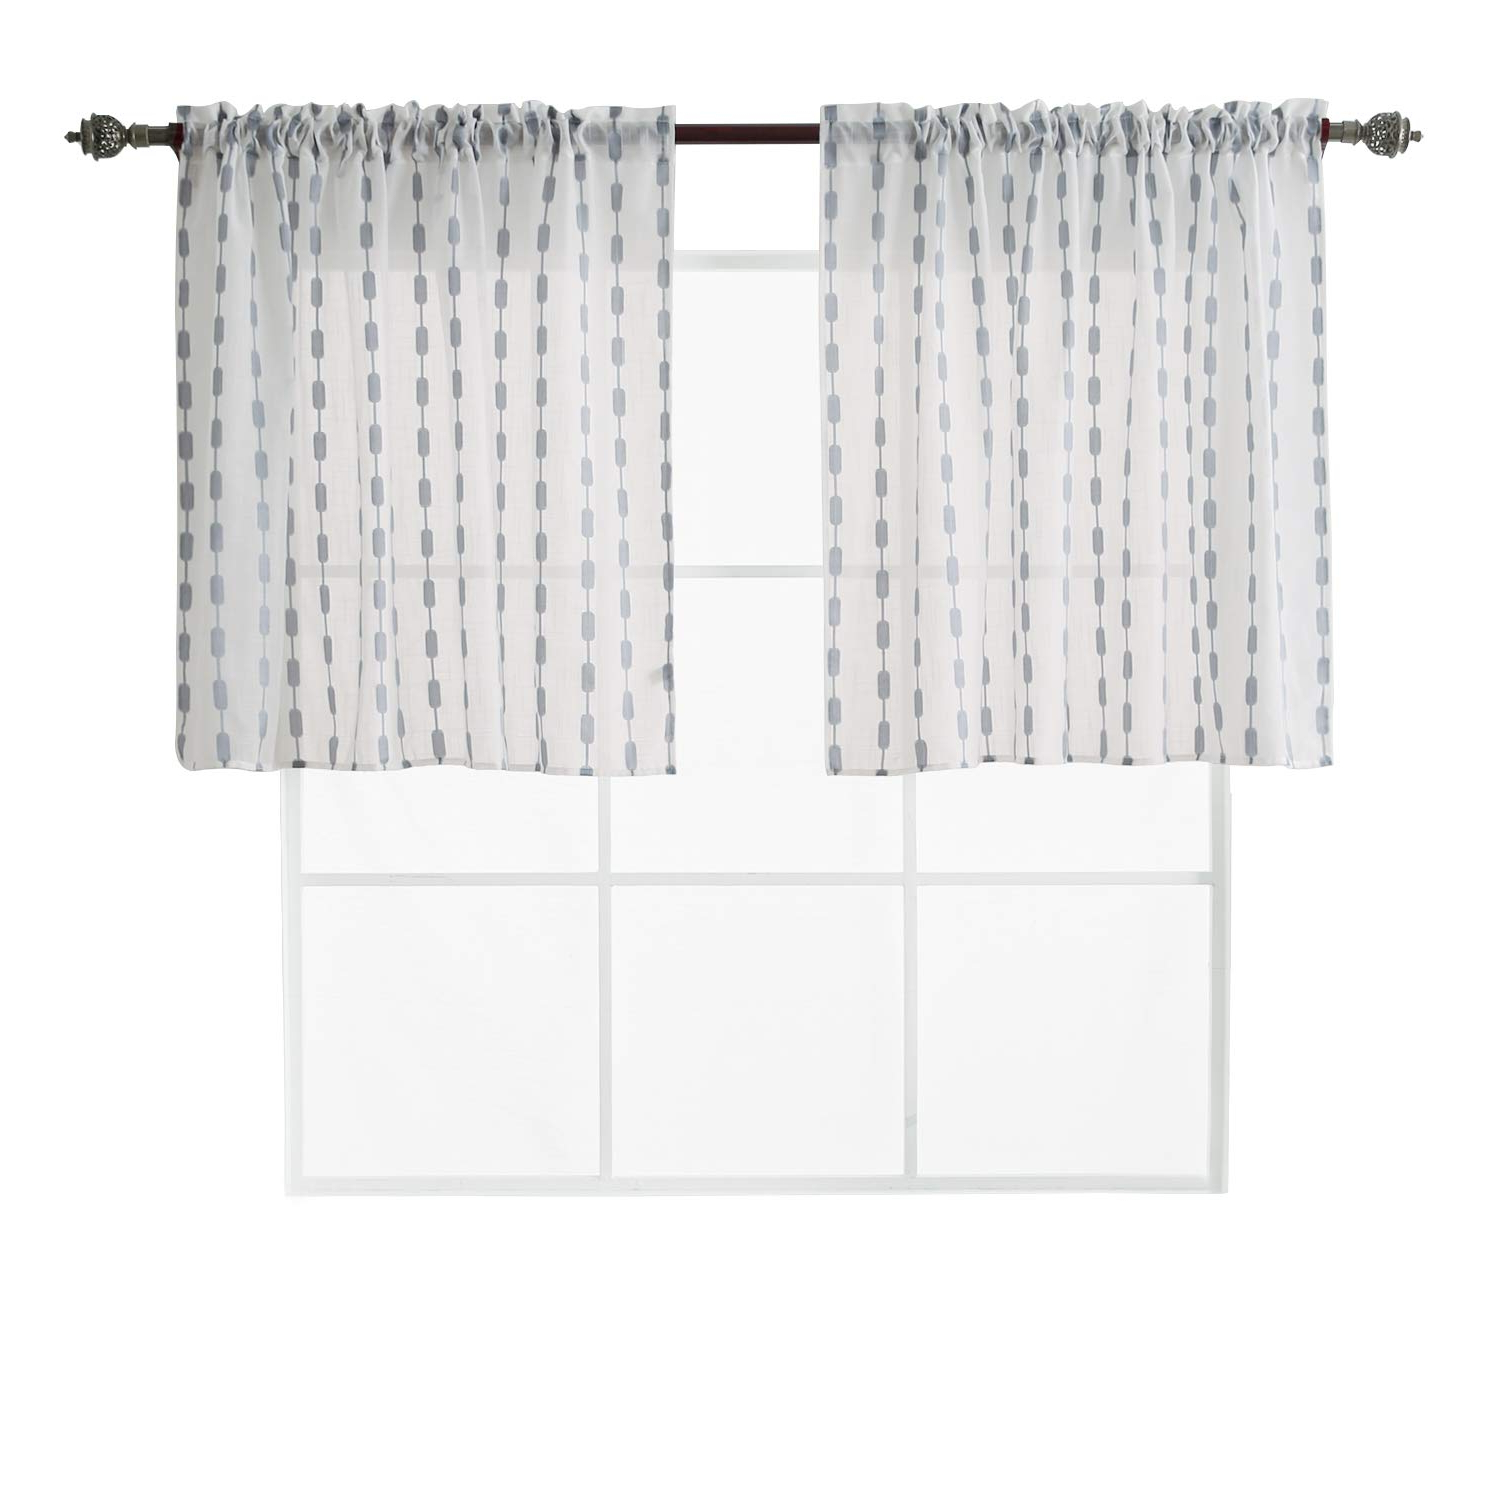 Deconovo Rod Pocket Semi Sheer Tier Curtains Textured Woven Tier Curtains Jacquard Sheer Curtain Panels For 52 X 36 Inch Grey 2 Panels With Regard To Popular Linen Stripe Rod Pocket Sheer Kitchen Tier Sets (View 8 of 20)